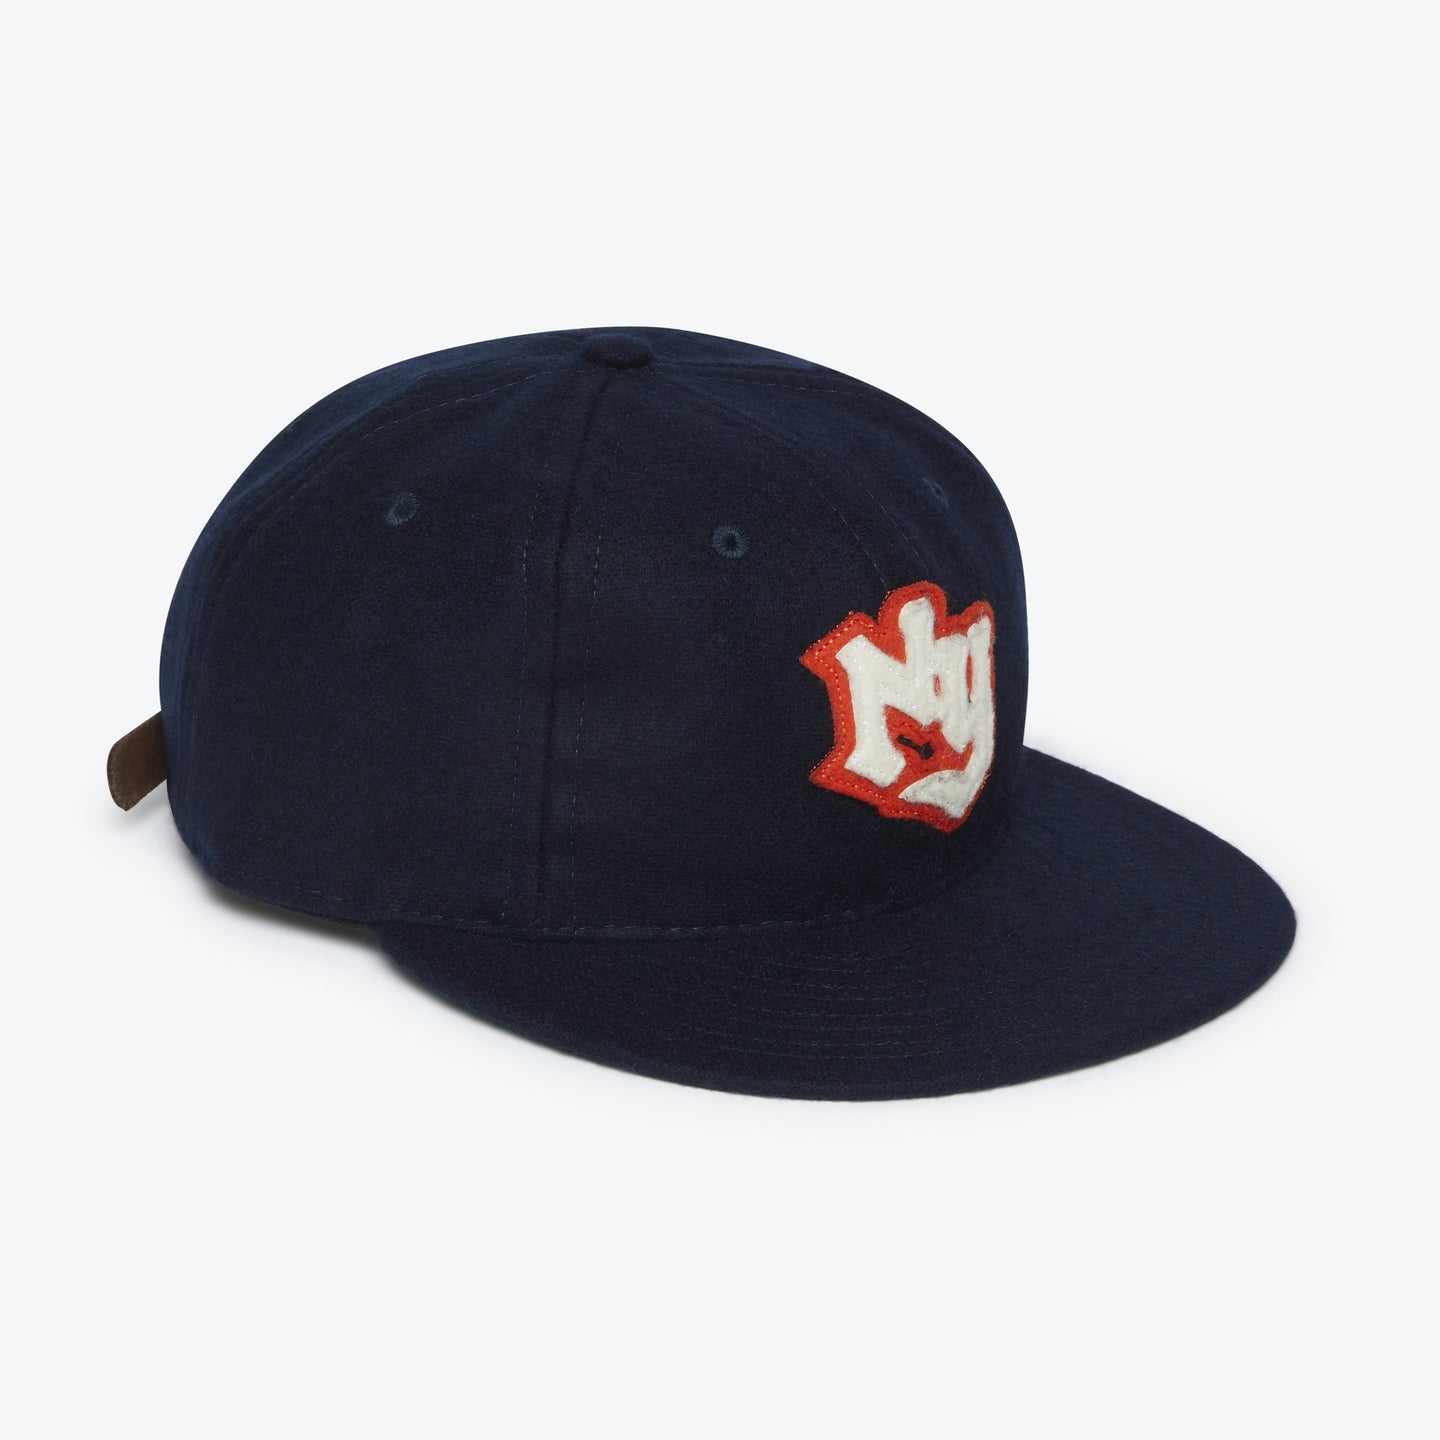 Ebbets Field Flannels New York Knights 1939 Ballcap - The Great Divide